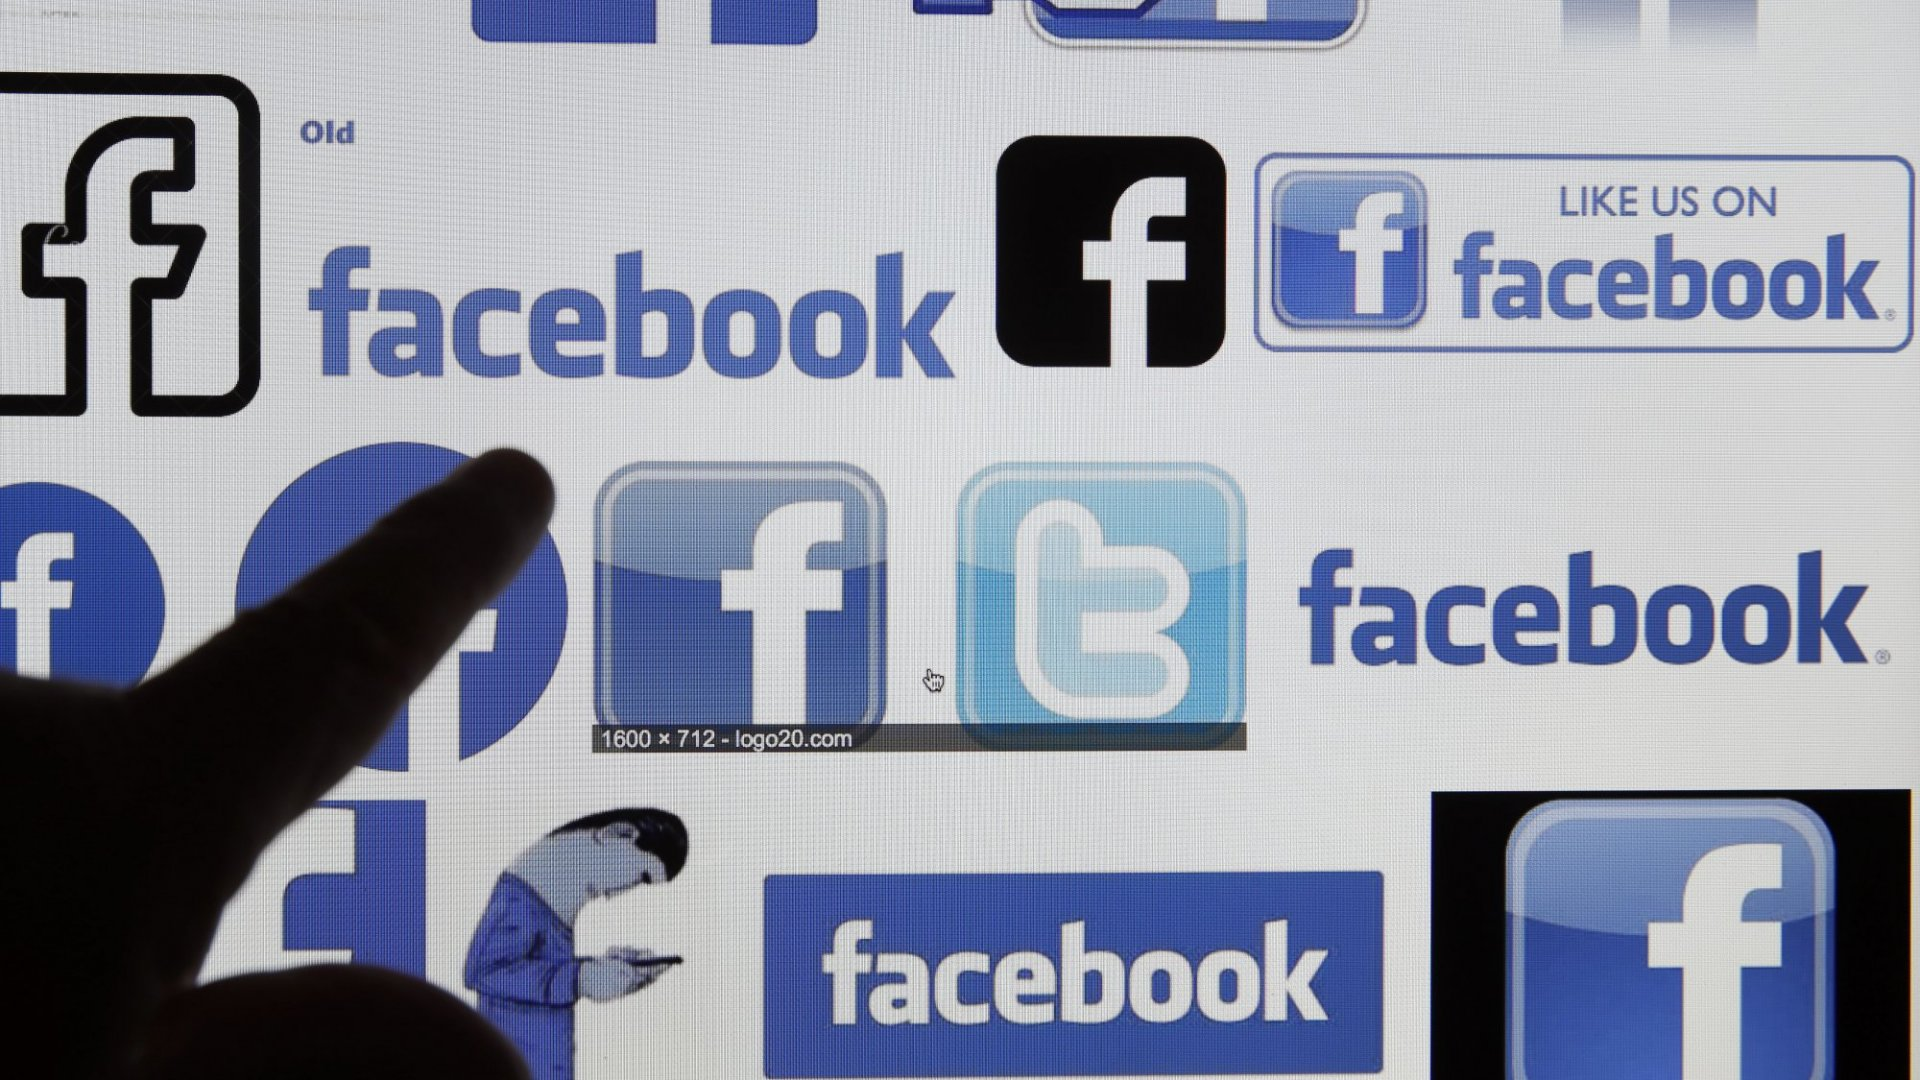 Even Facebook Former Insiders Are Turning Against the Company With #DeleteFacebook